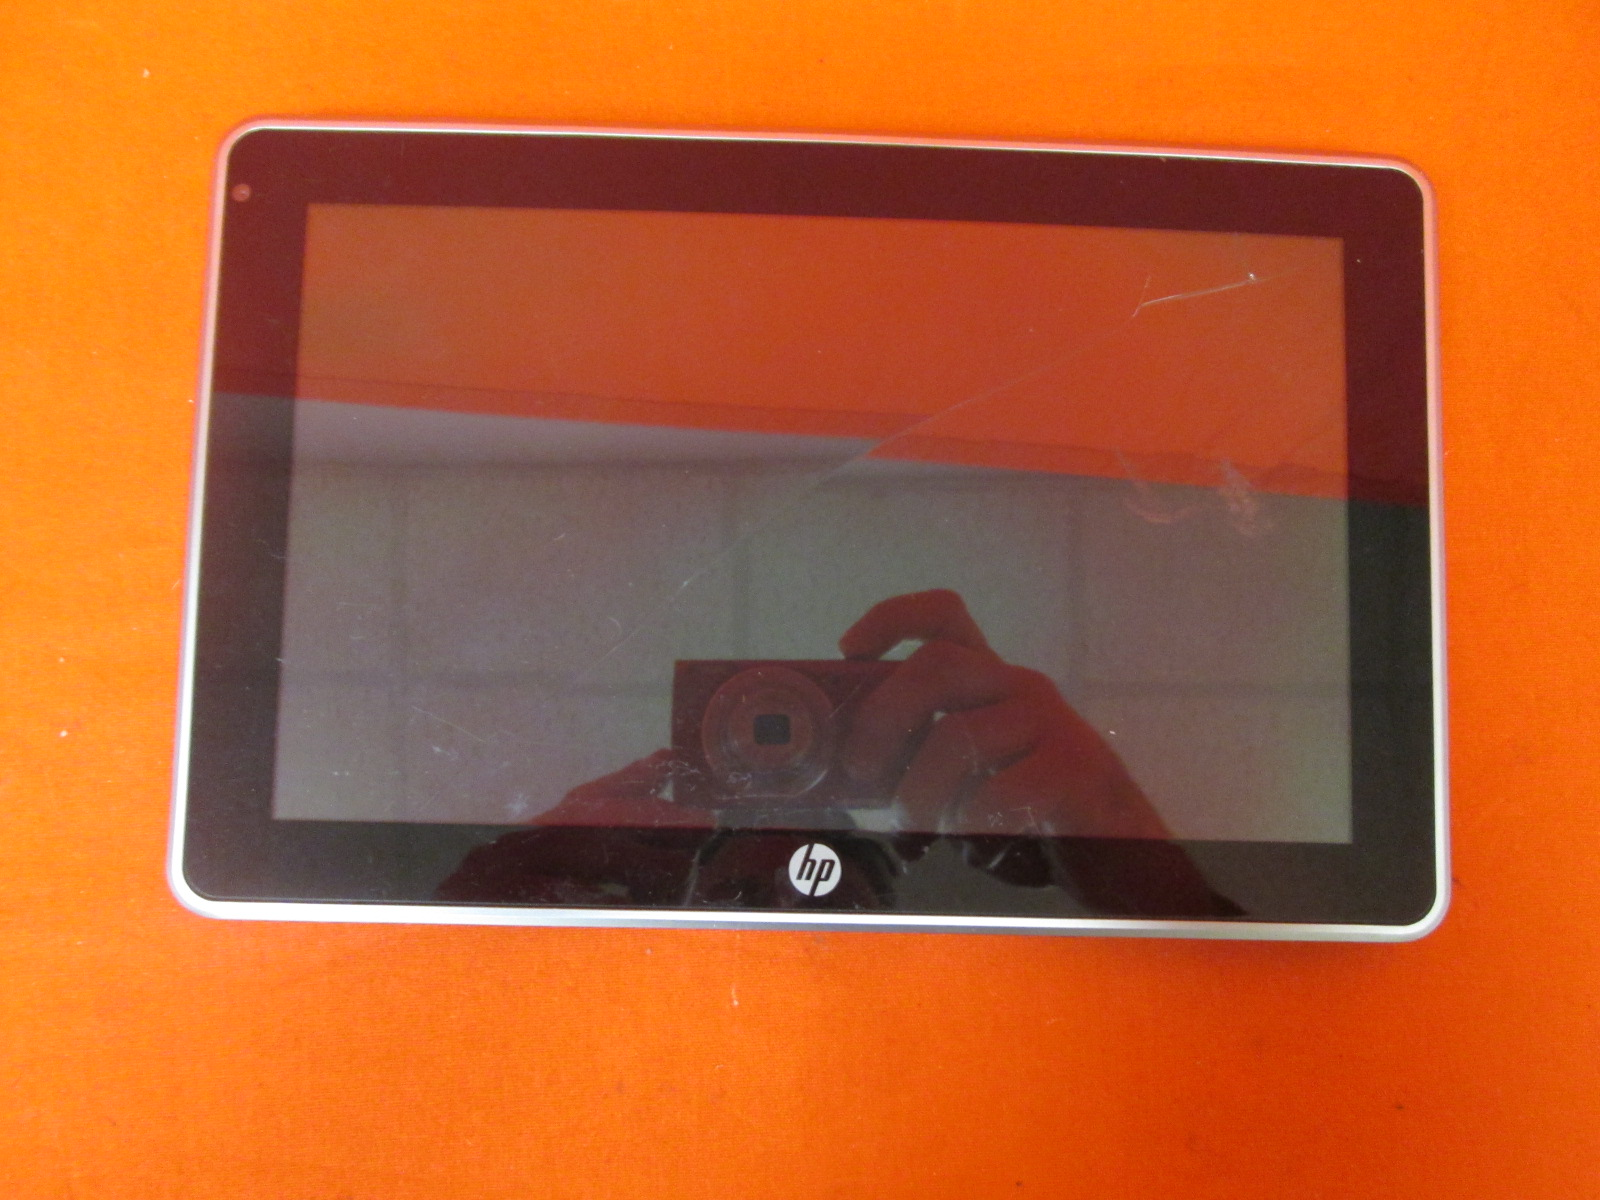 Image 1 of Broken HP Slate 500 Tablet PC Atom Z540 1.86GHZ 64GB SSD 2GB 8.9